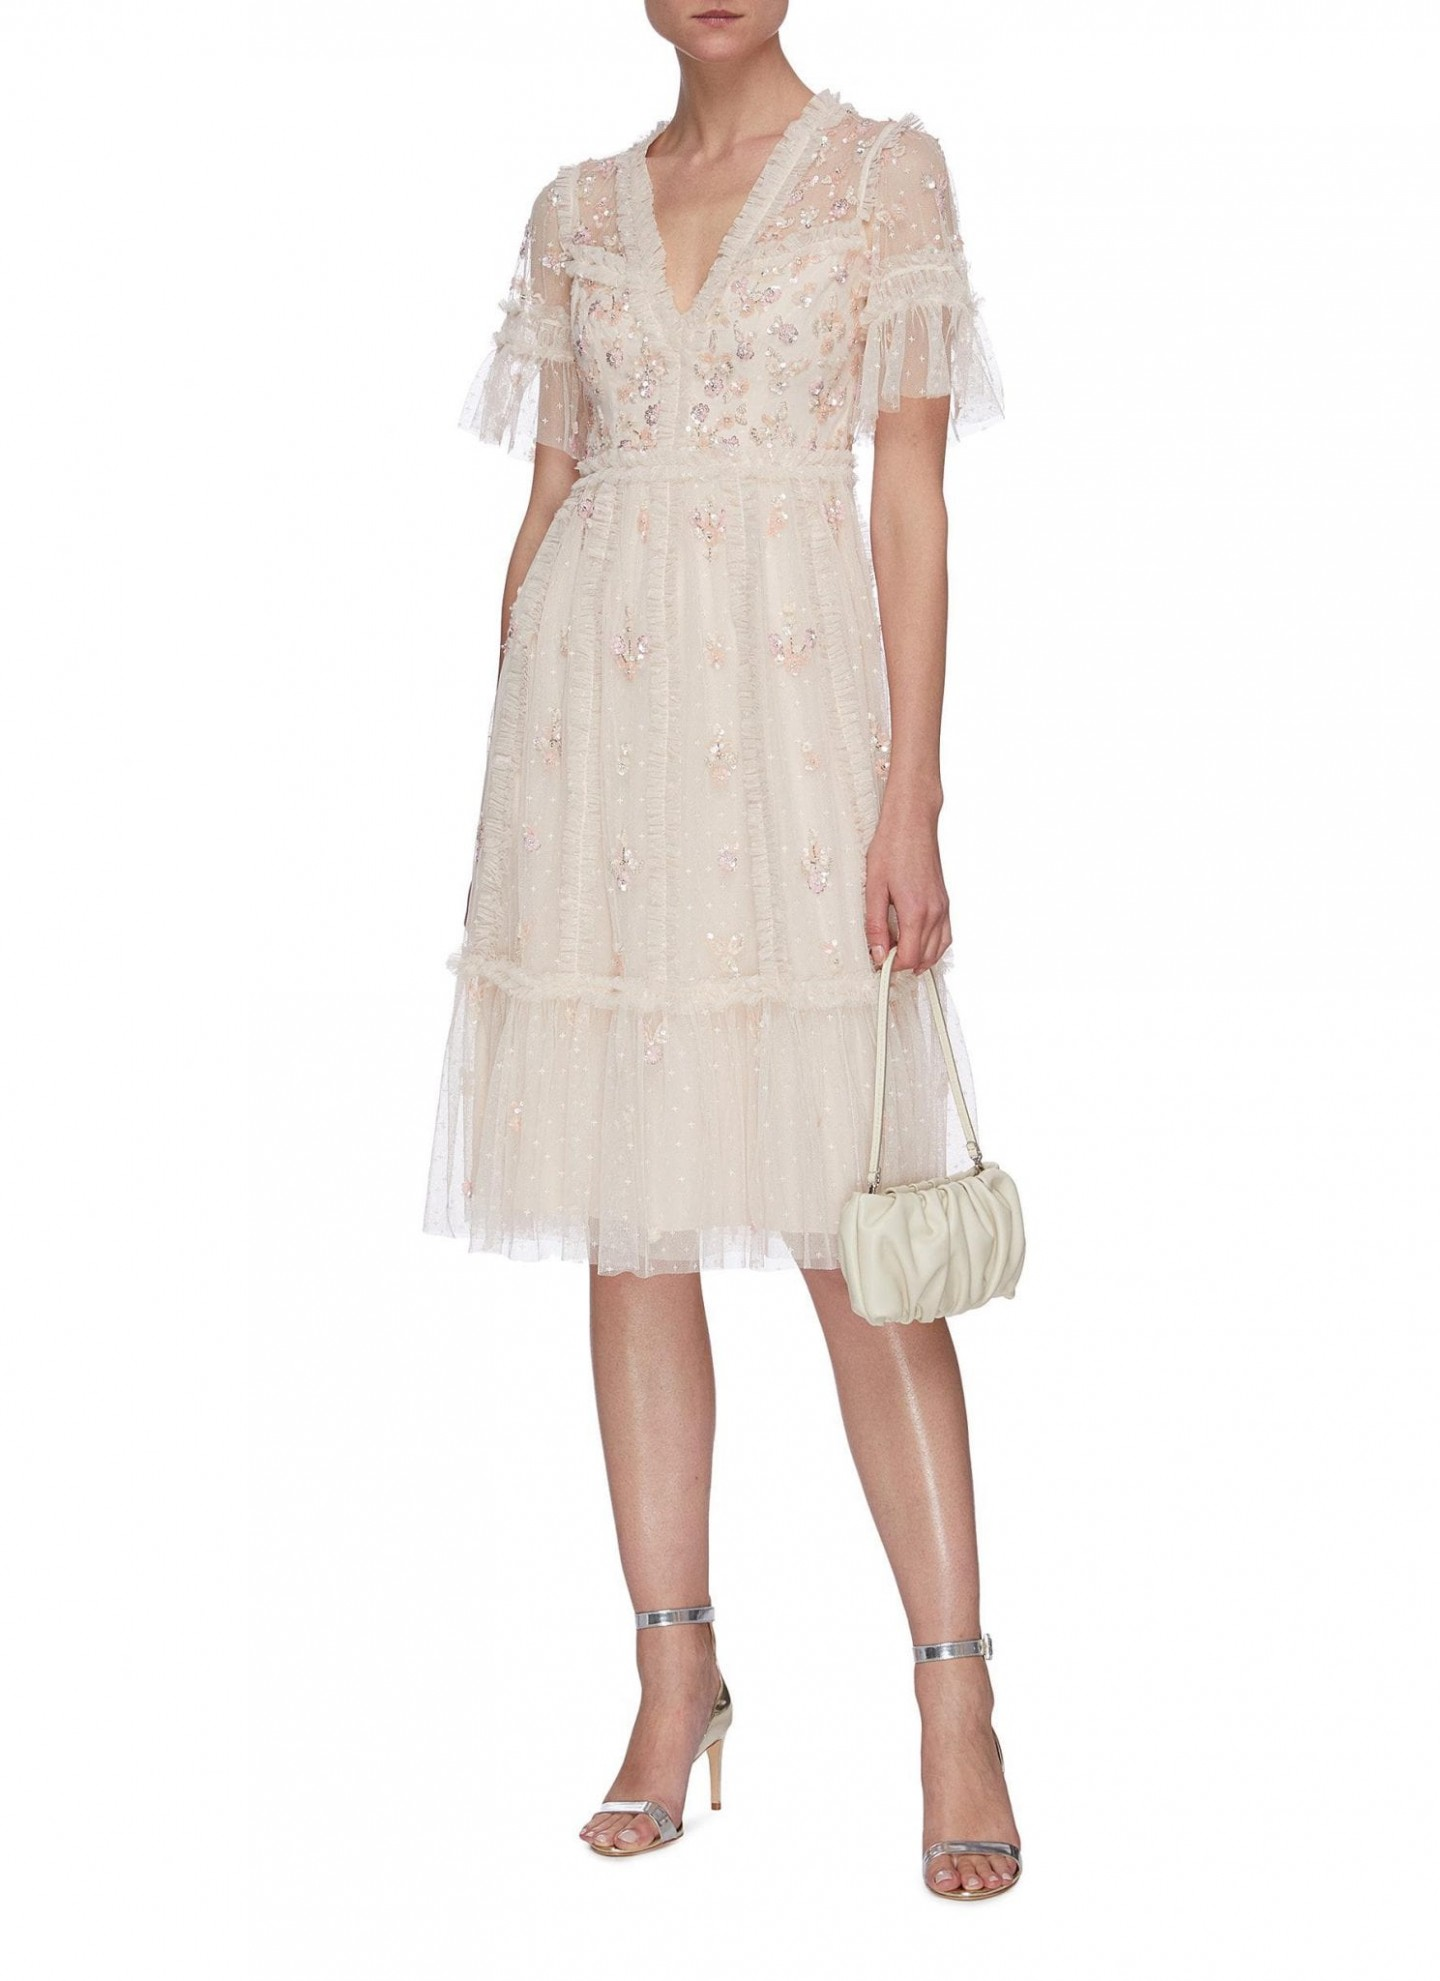 NEEDLE & THREAD Penelope Shimmer Sequin Embellished Short Sleeve Tulle Midi Dress